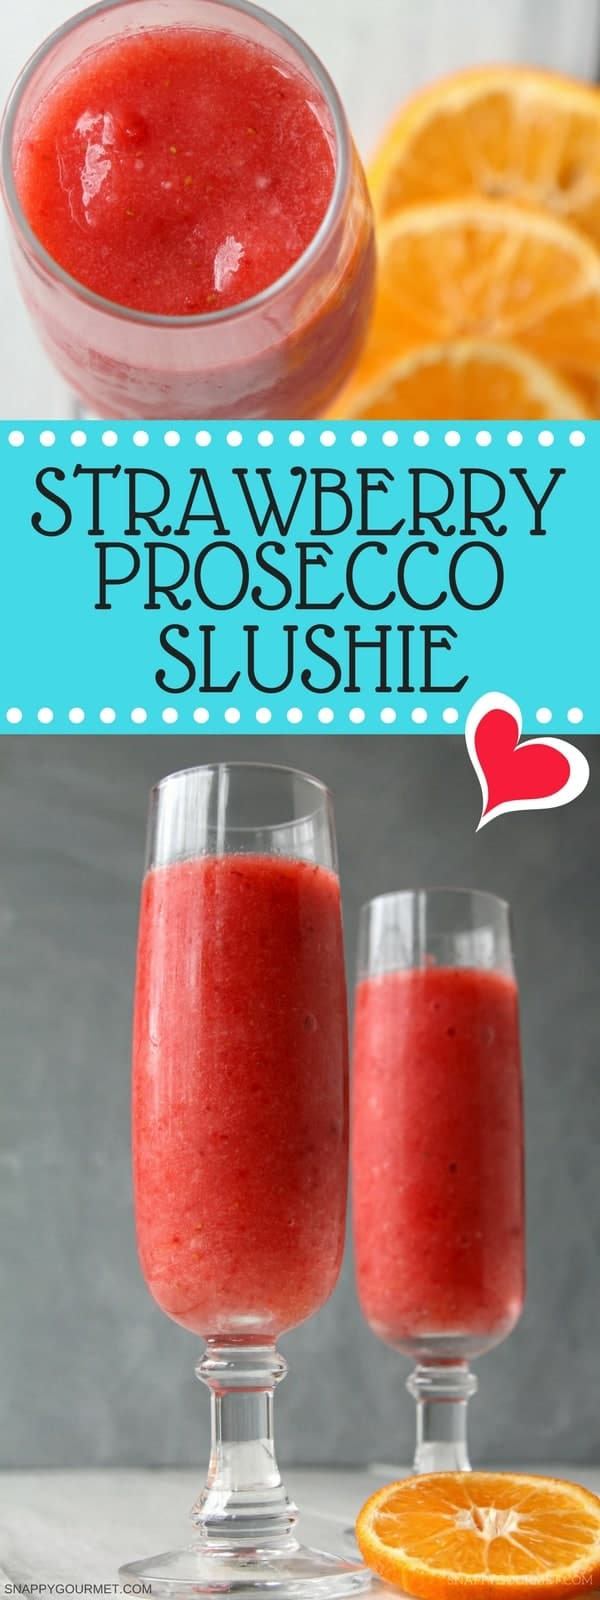 Strawberry Prosecco Slushie Cocktail Recipe - Homemade wine slushie in a blender with prosecco and frozen strawberries. SnappyGourmet.com